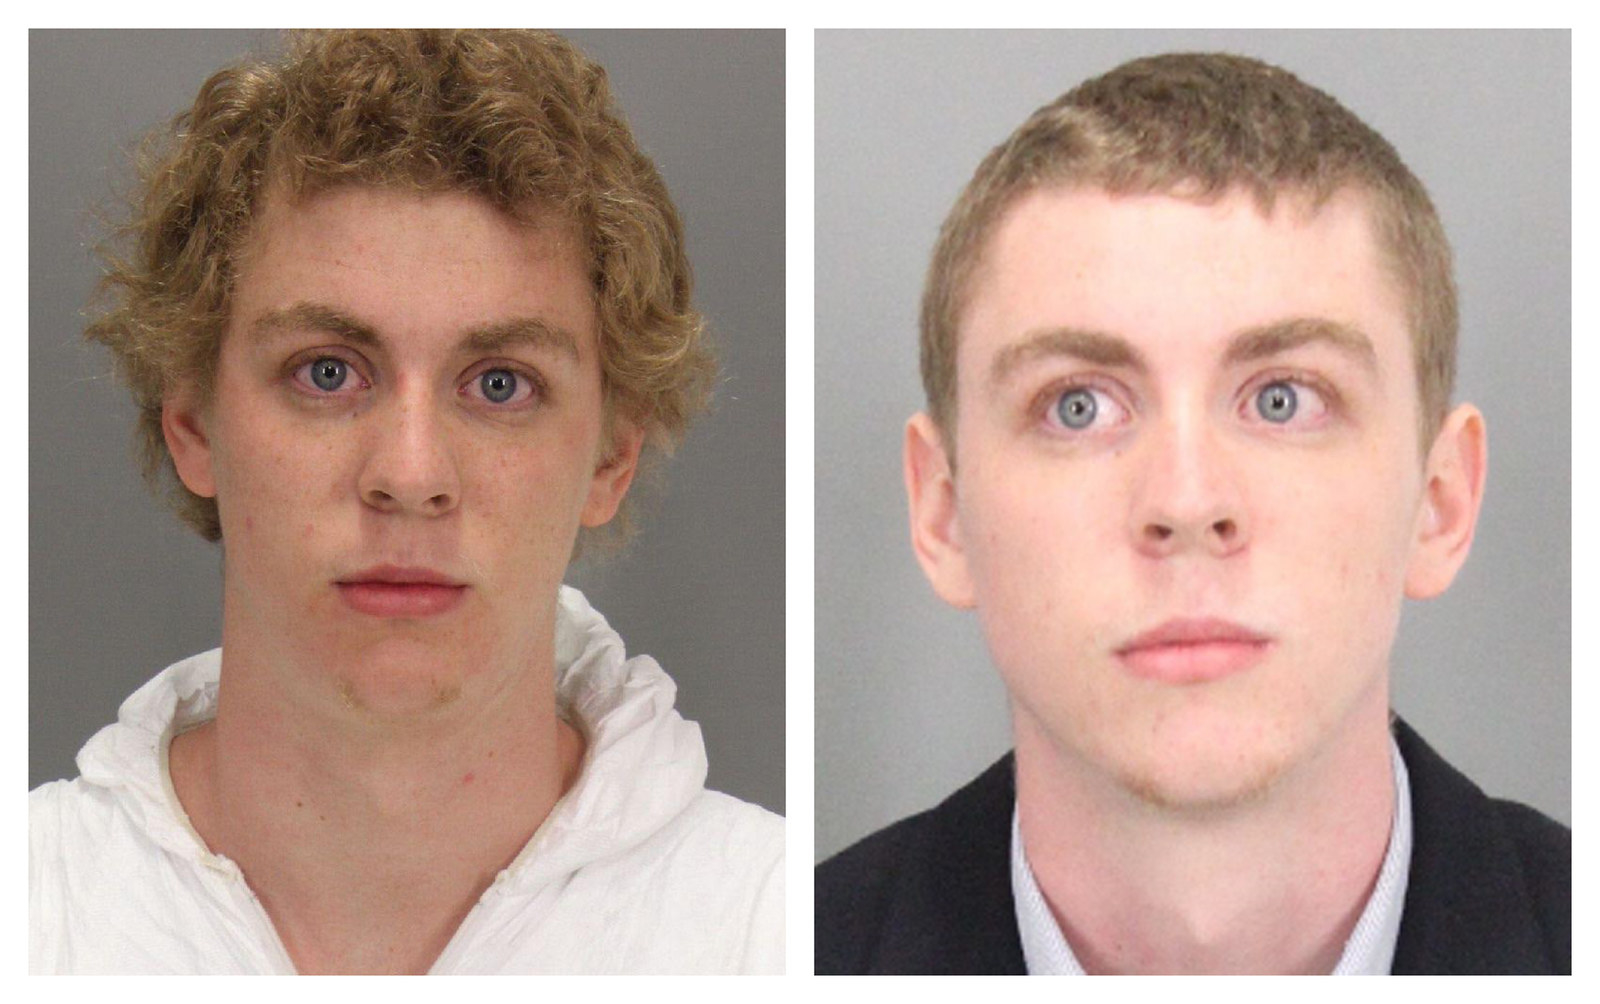 Brock Turner's Lawyer Asked The Stanford Victim About Her Drinking Habits